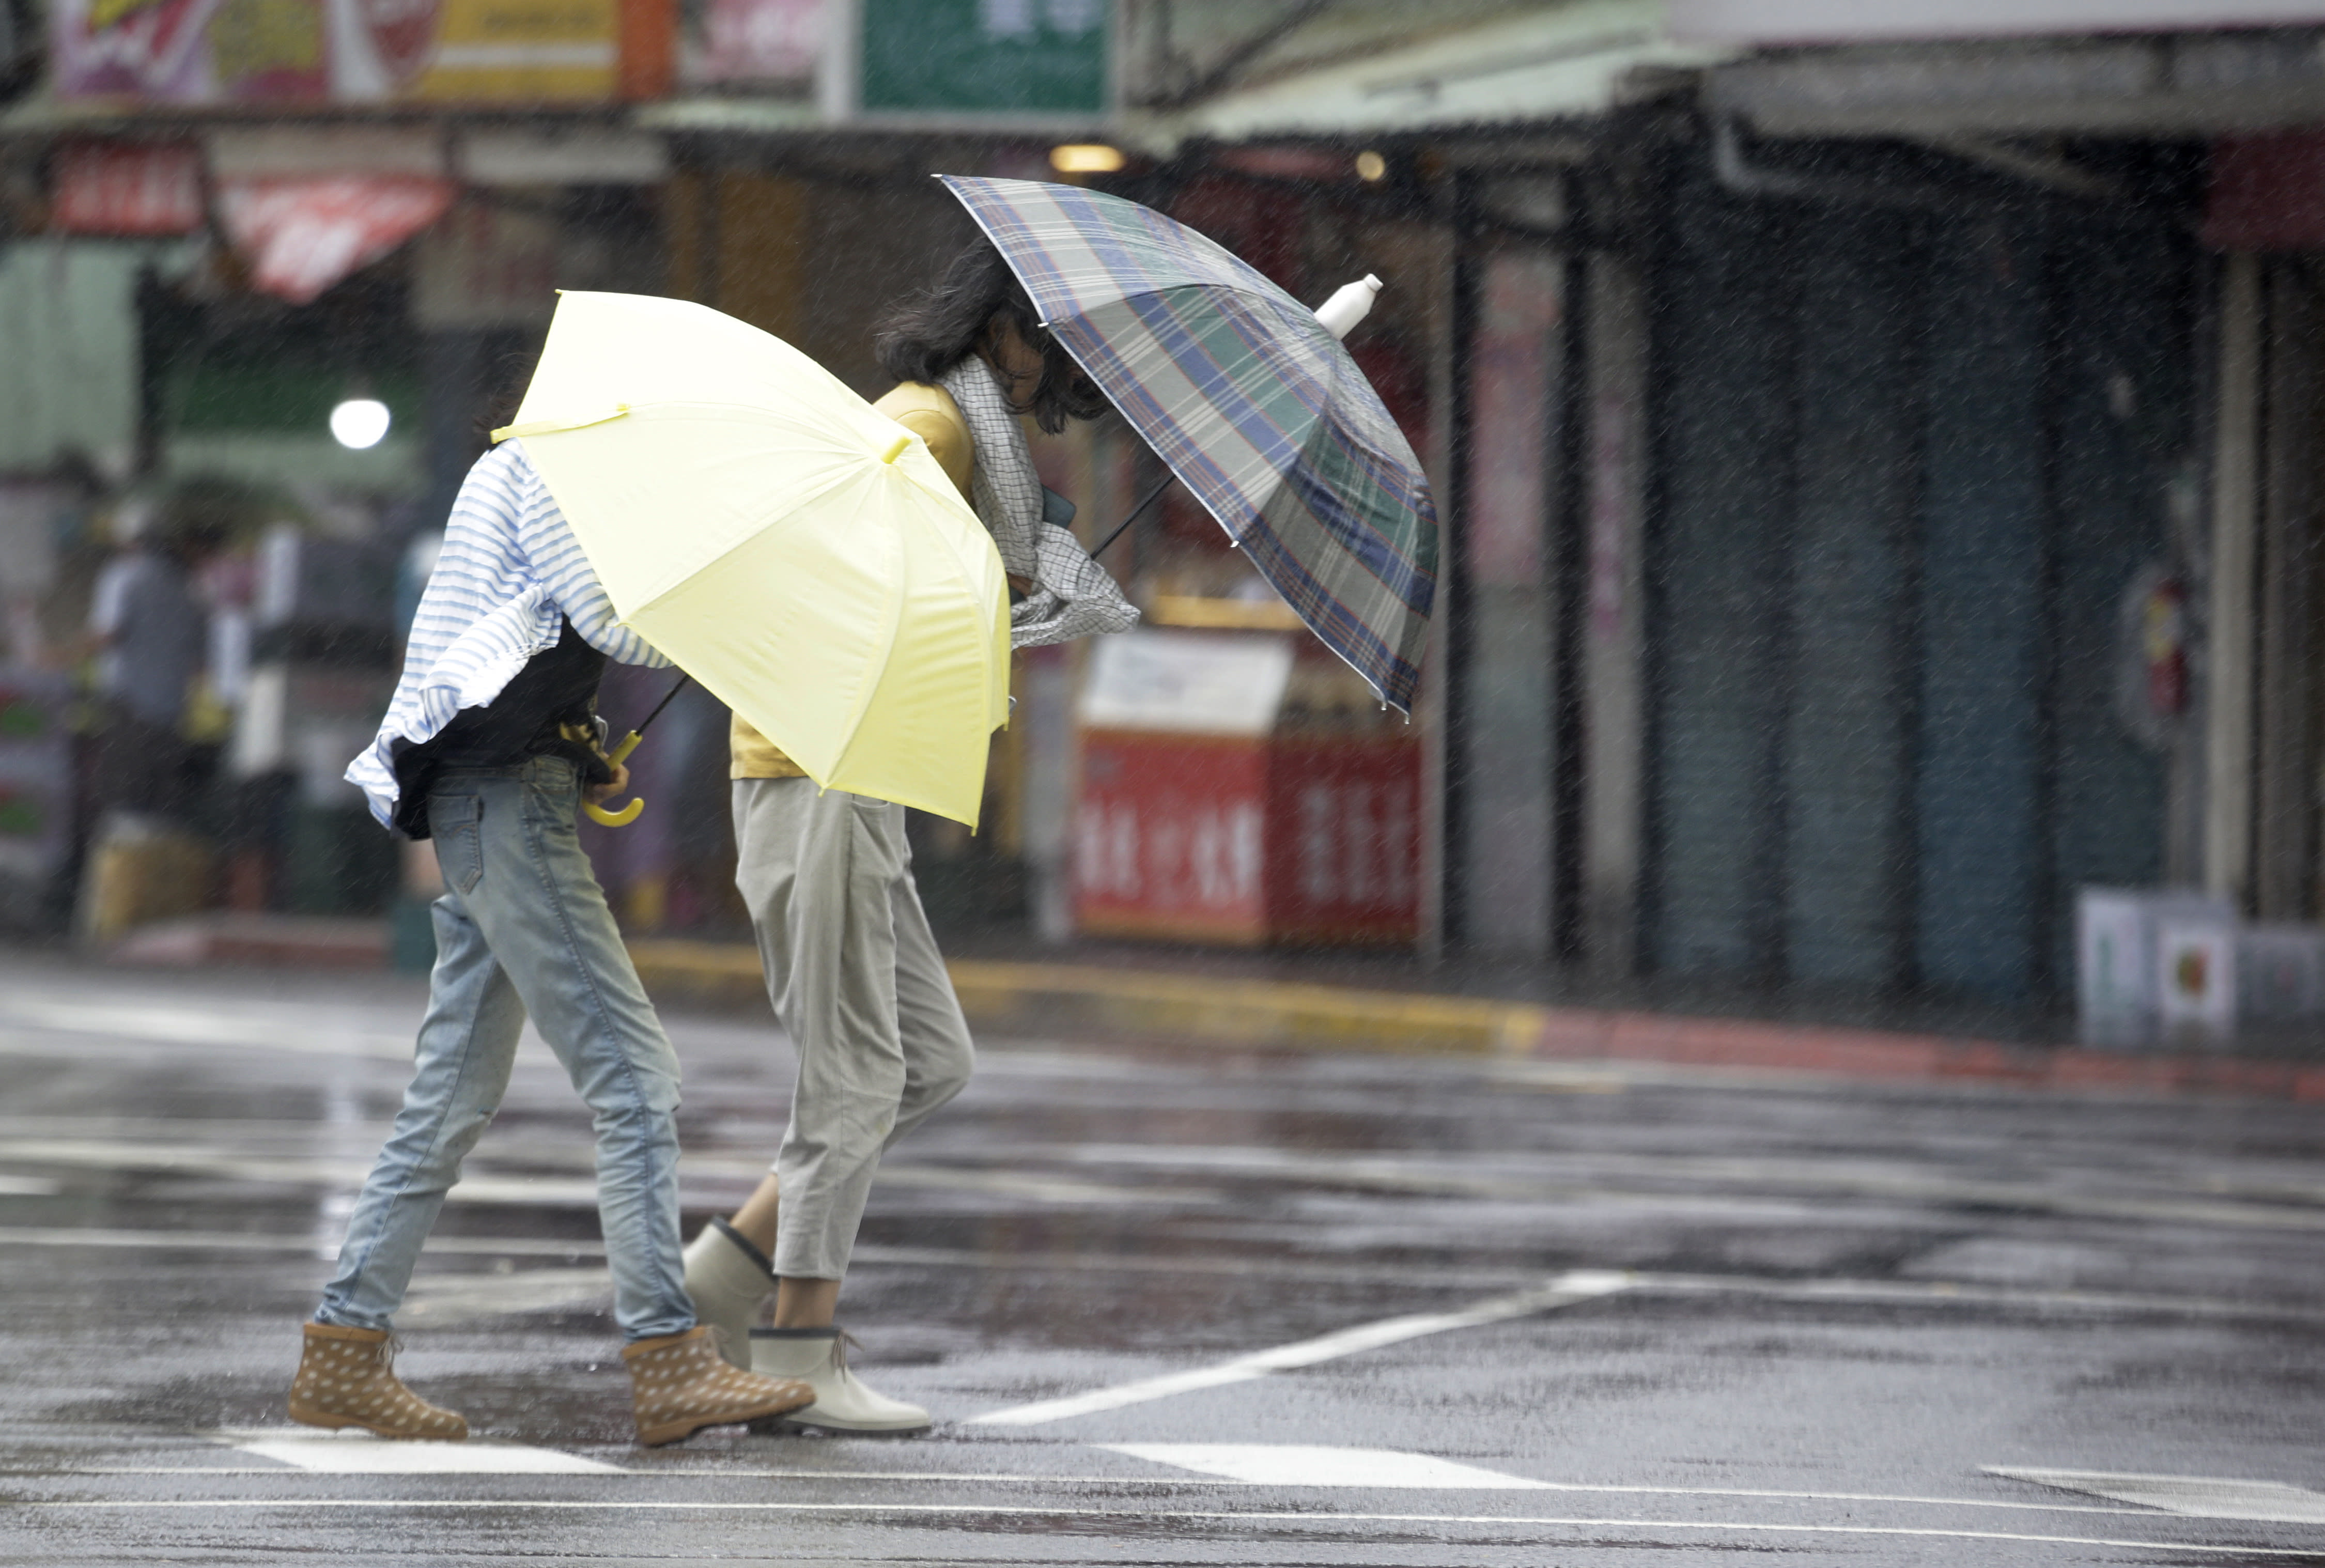 Two Taiwanese women make their way against powerful gusts of wind generated by typhoon Lekima in Taipei, Taiwan, Friday, Aug. 9, 2019. (AP Photo/Chiang Ying-ying)